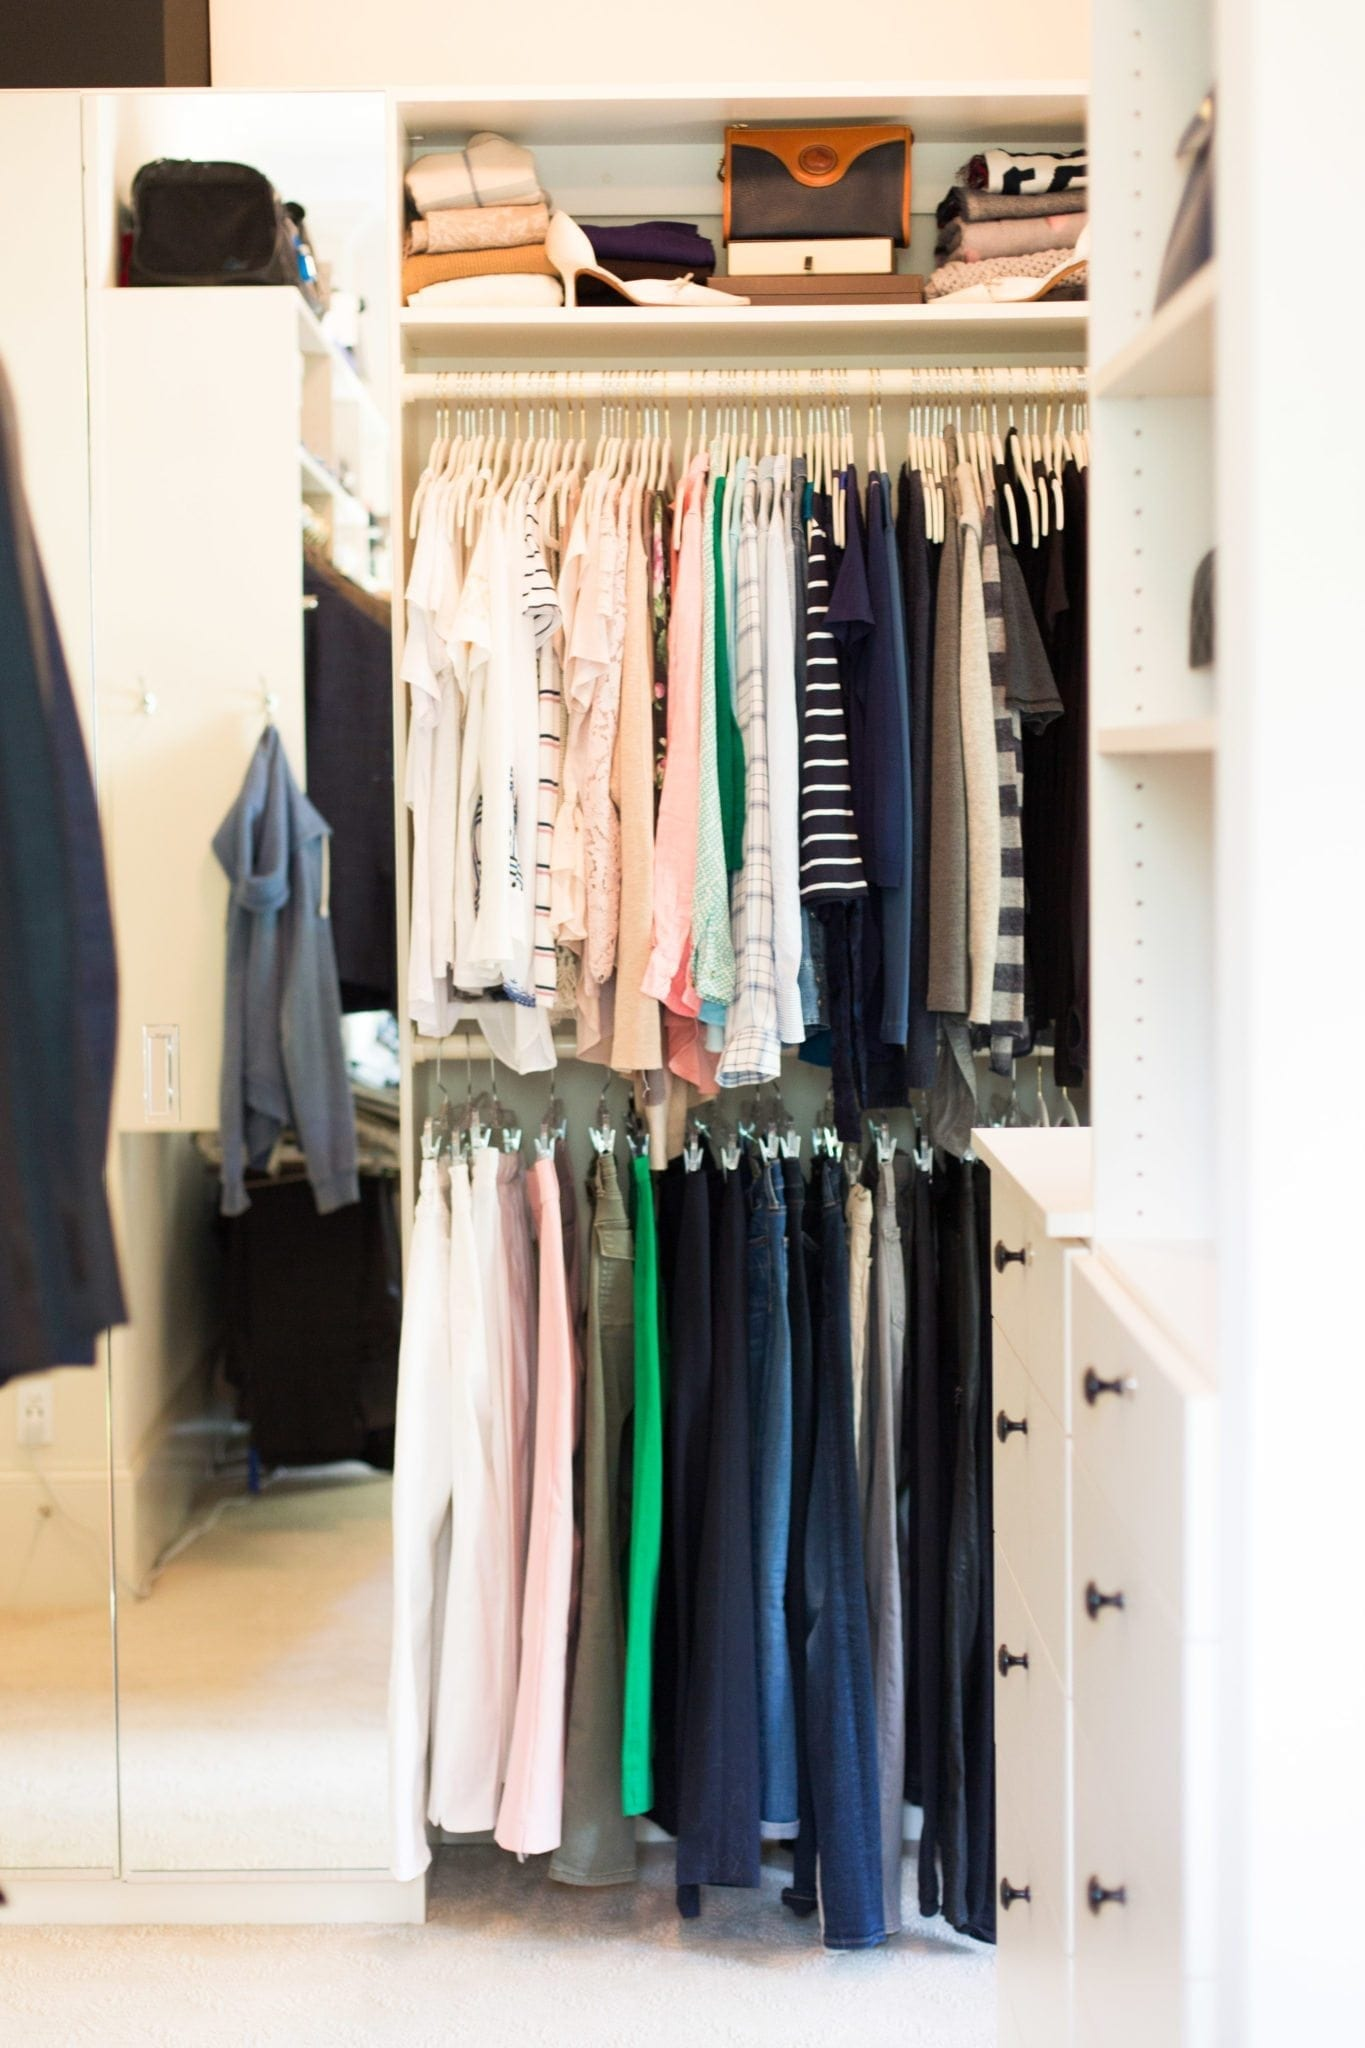 California Closets Atlanta and advice to better arrange closets.